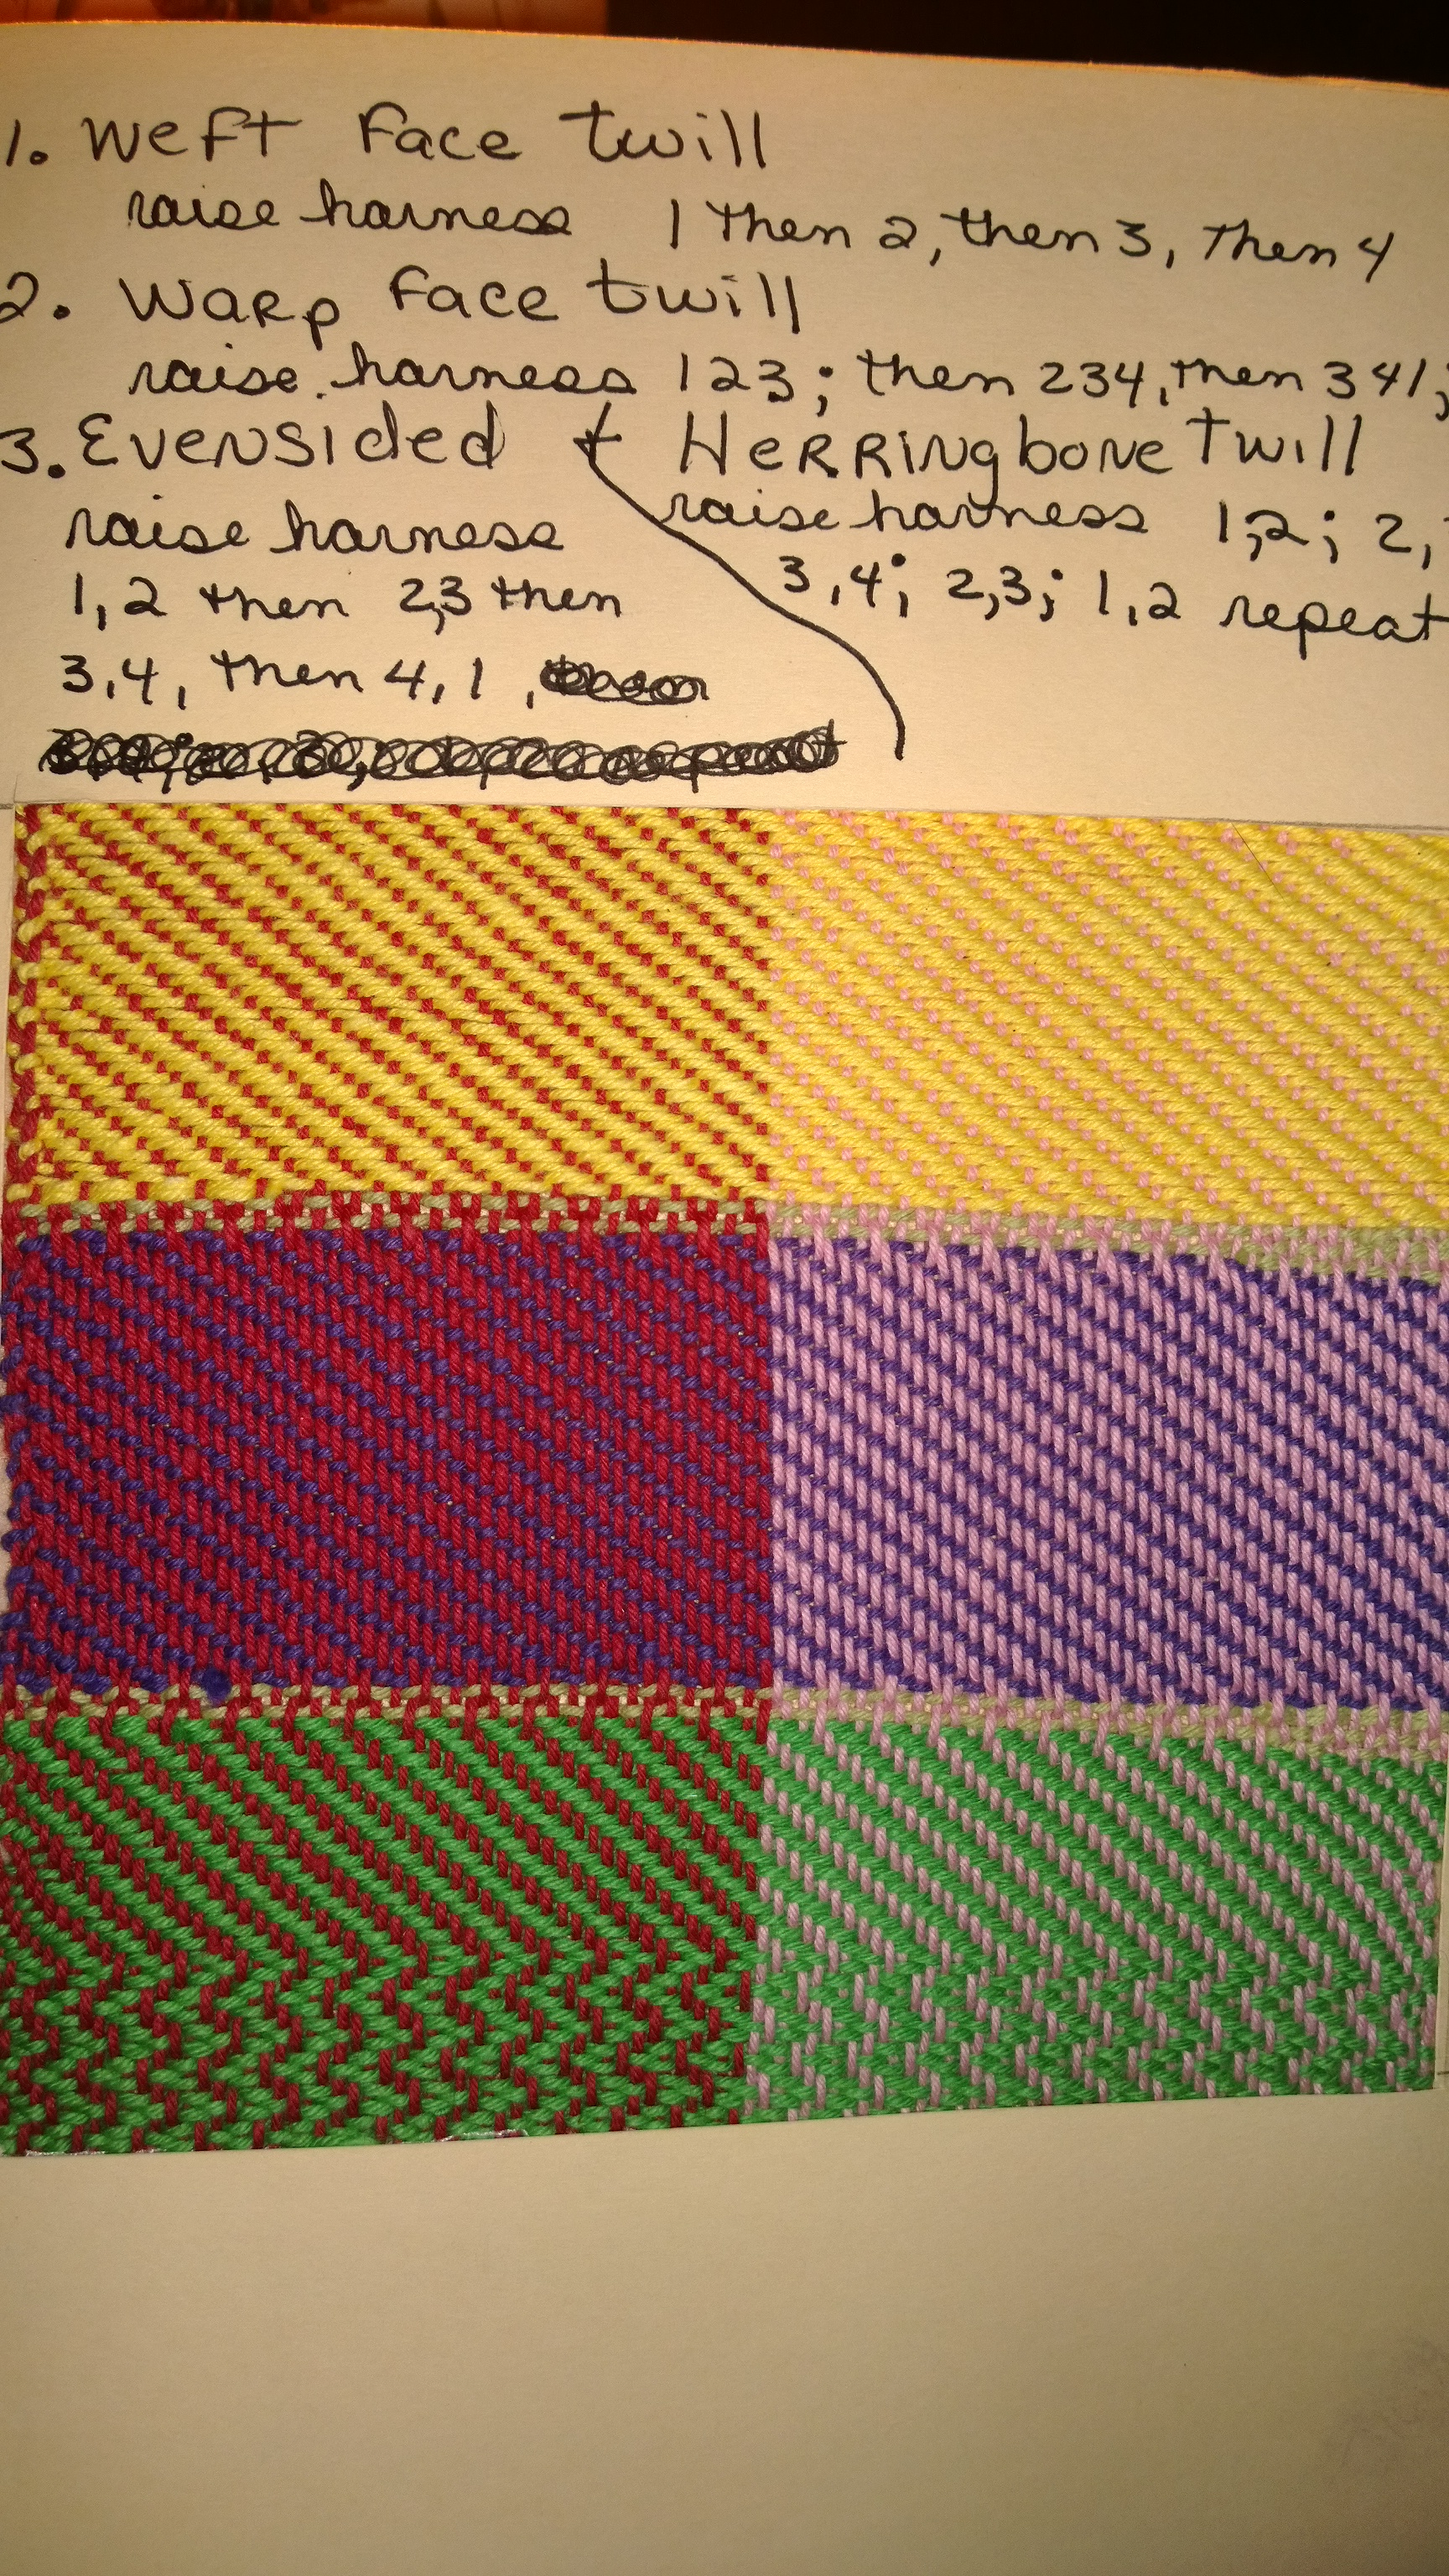 Weft & Warp Face Twill-Samples